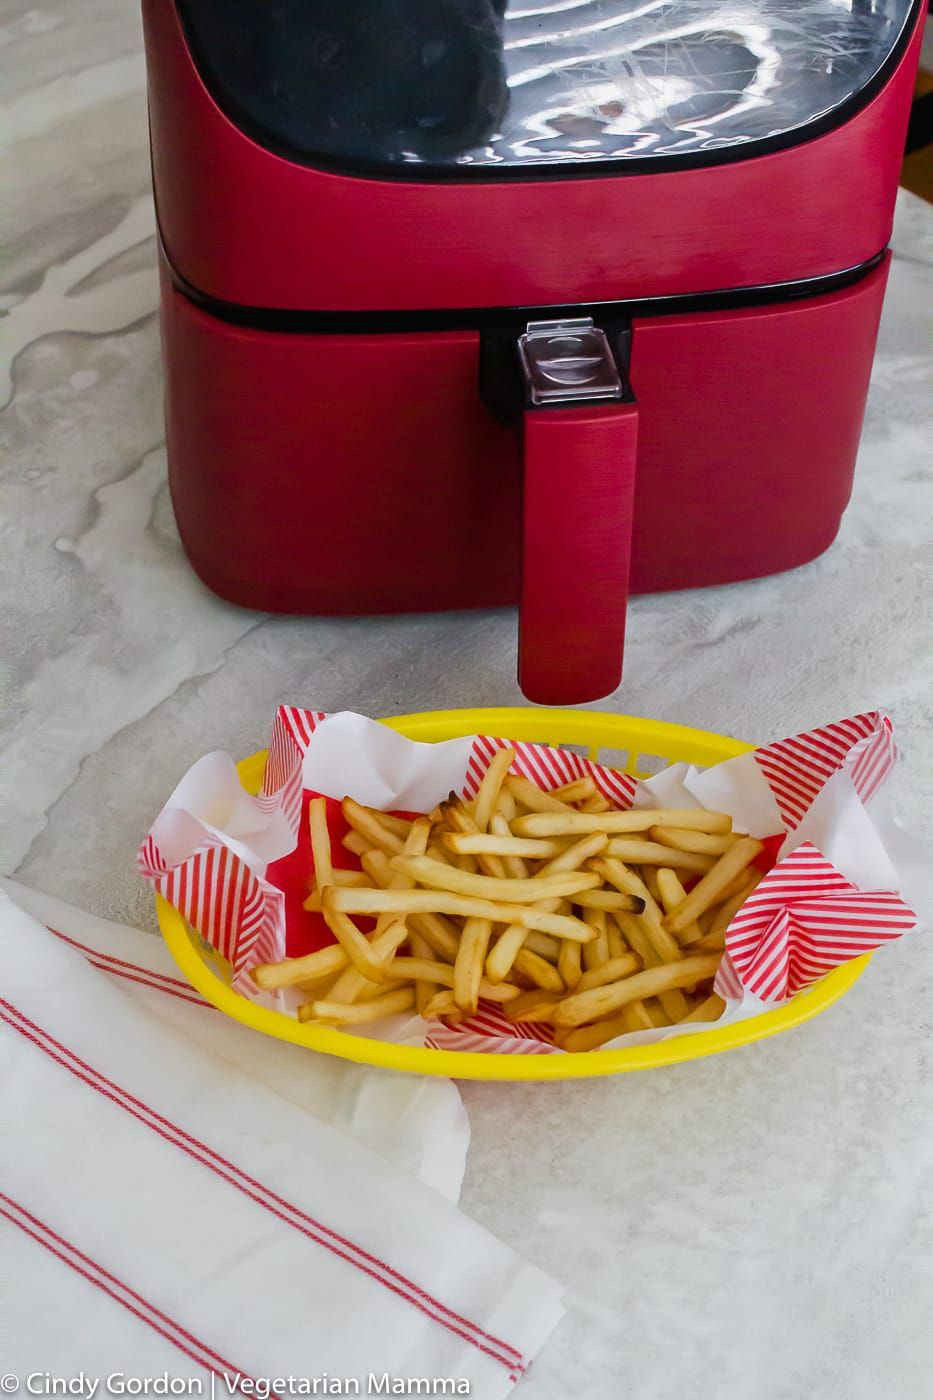 Air Fryer Frozen French Fries vertical photo showing red